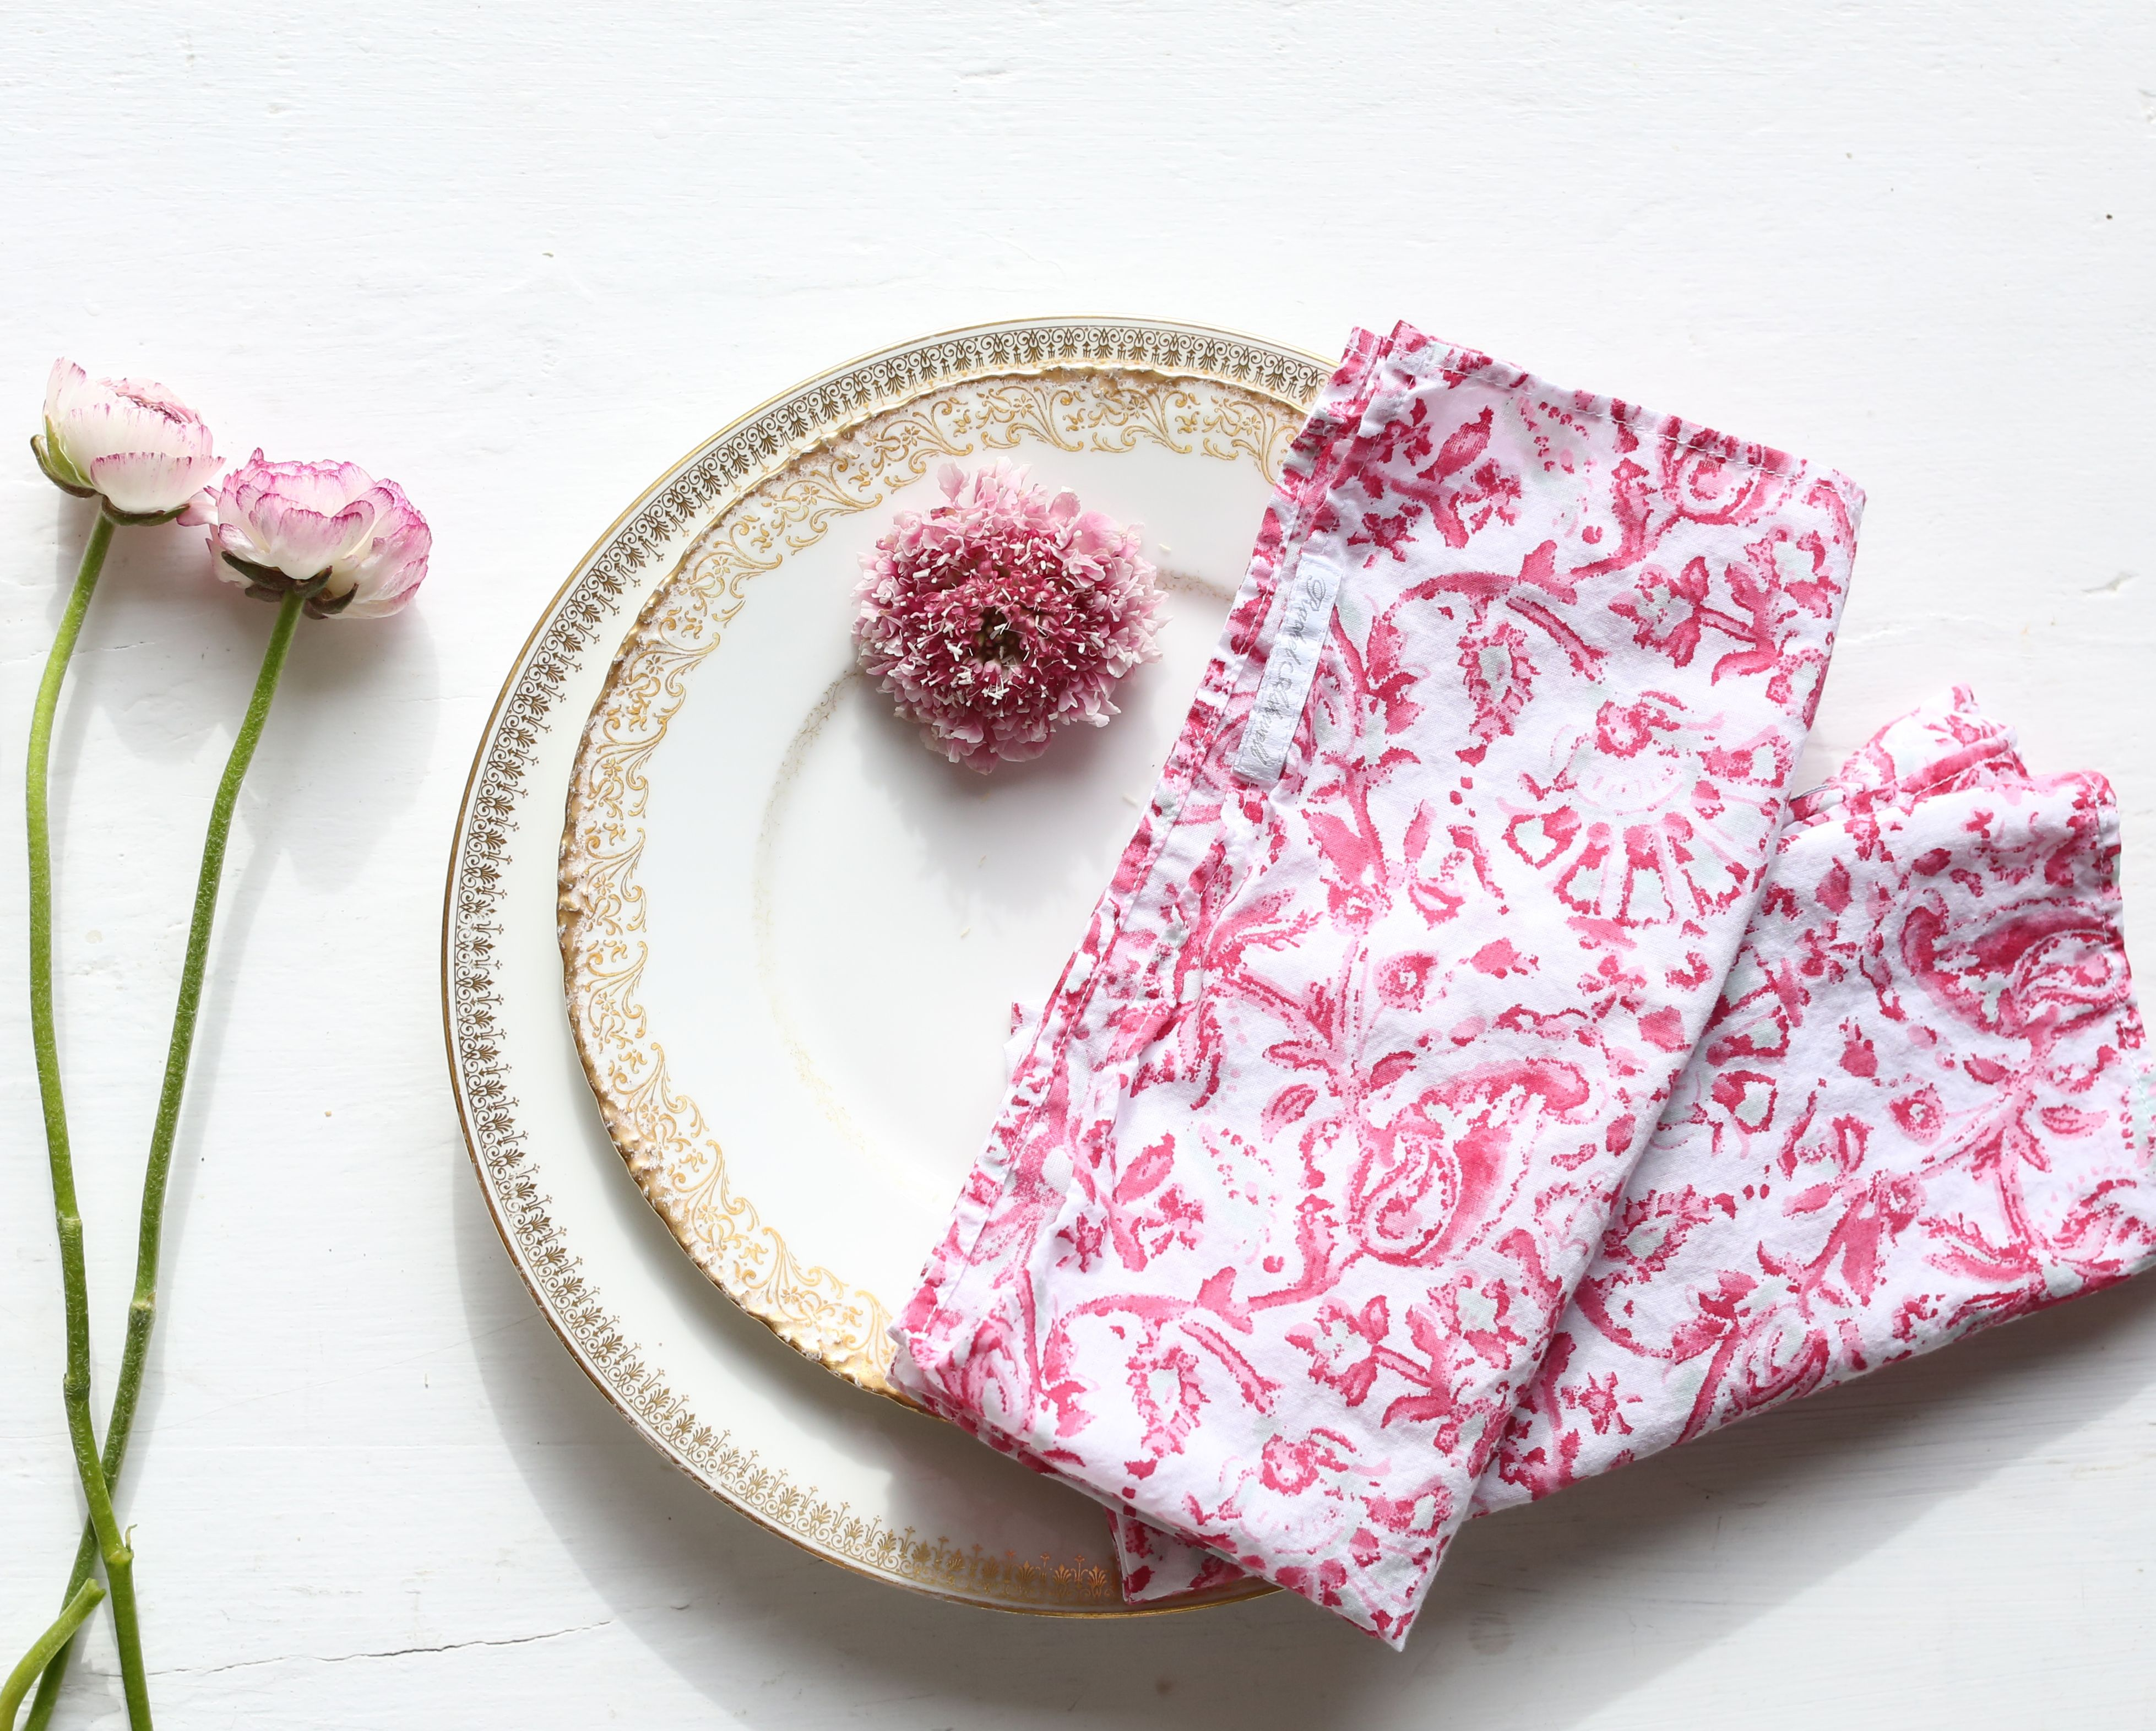 30% off our Indes Napkins. Shop now on shabbychic.com